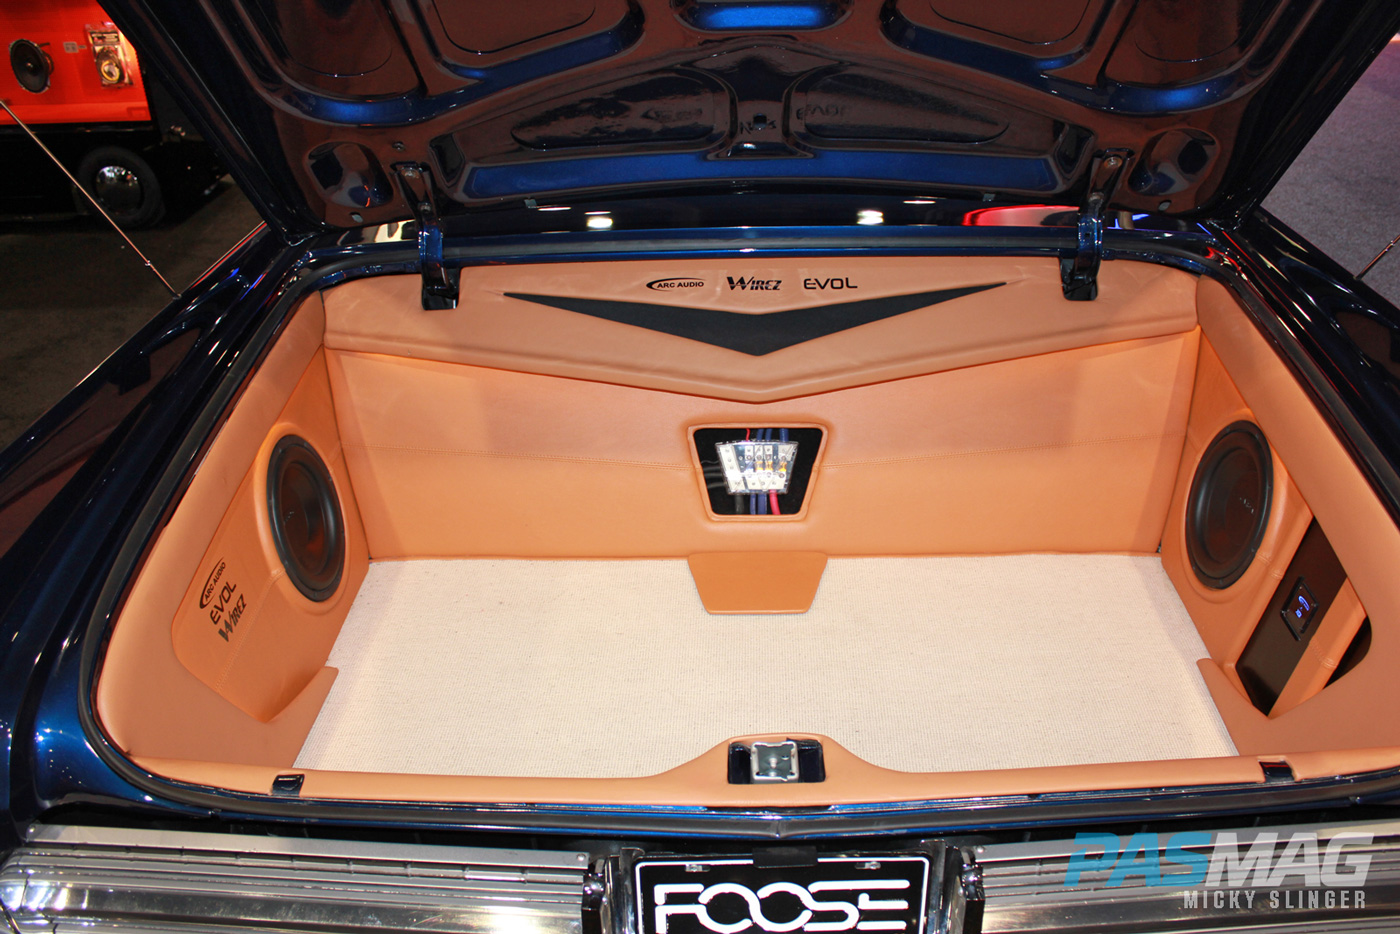 PASMAG CES 2015 Las Vegas NV ARC Audio Chip Foose Dodge Charger Wirez trunk